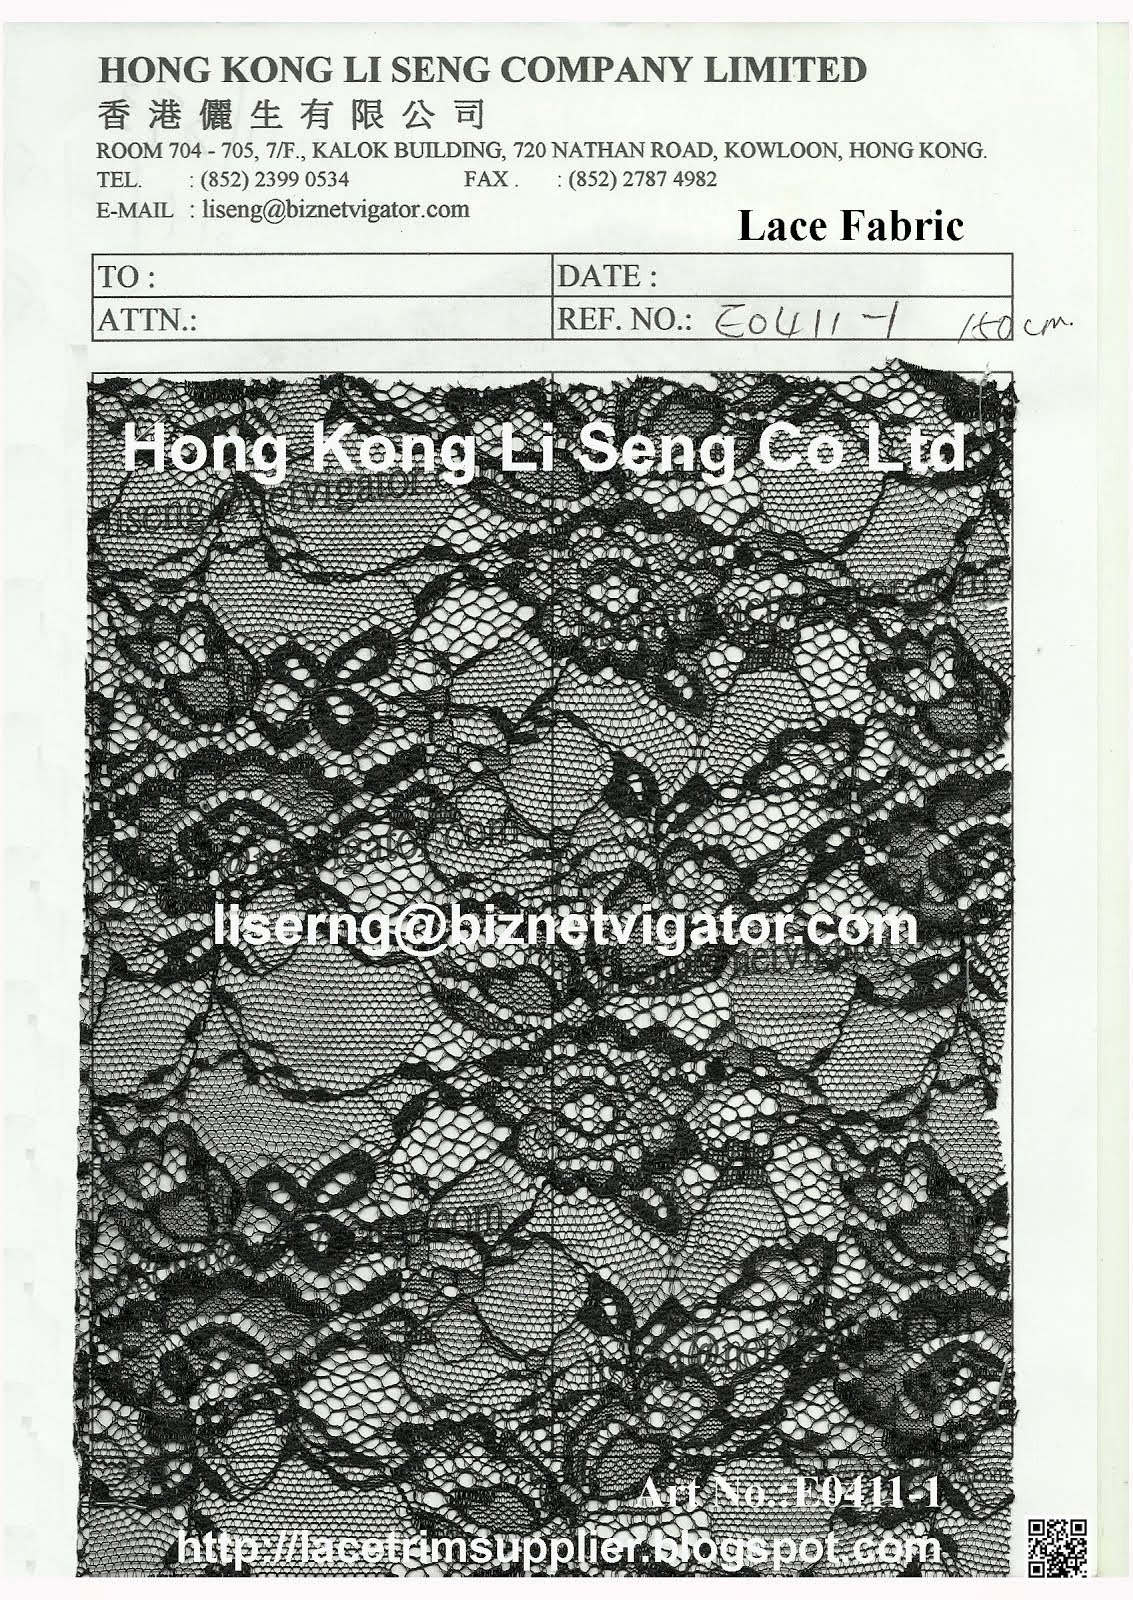 New Lace Fabric Pattern - Hong Kong Li Seng Co Ltd